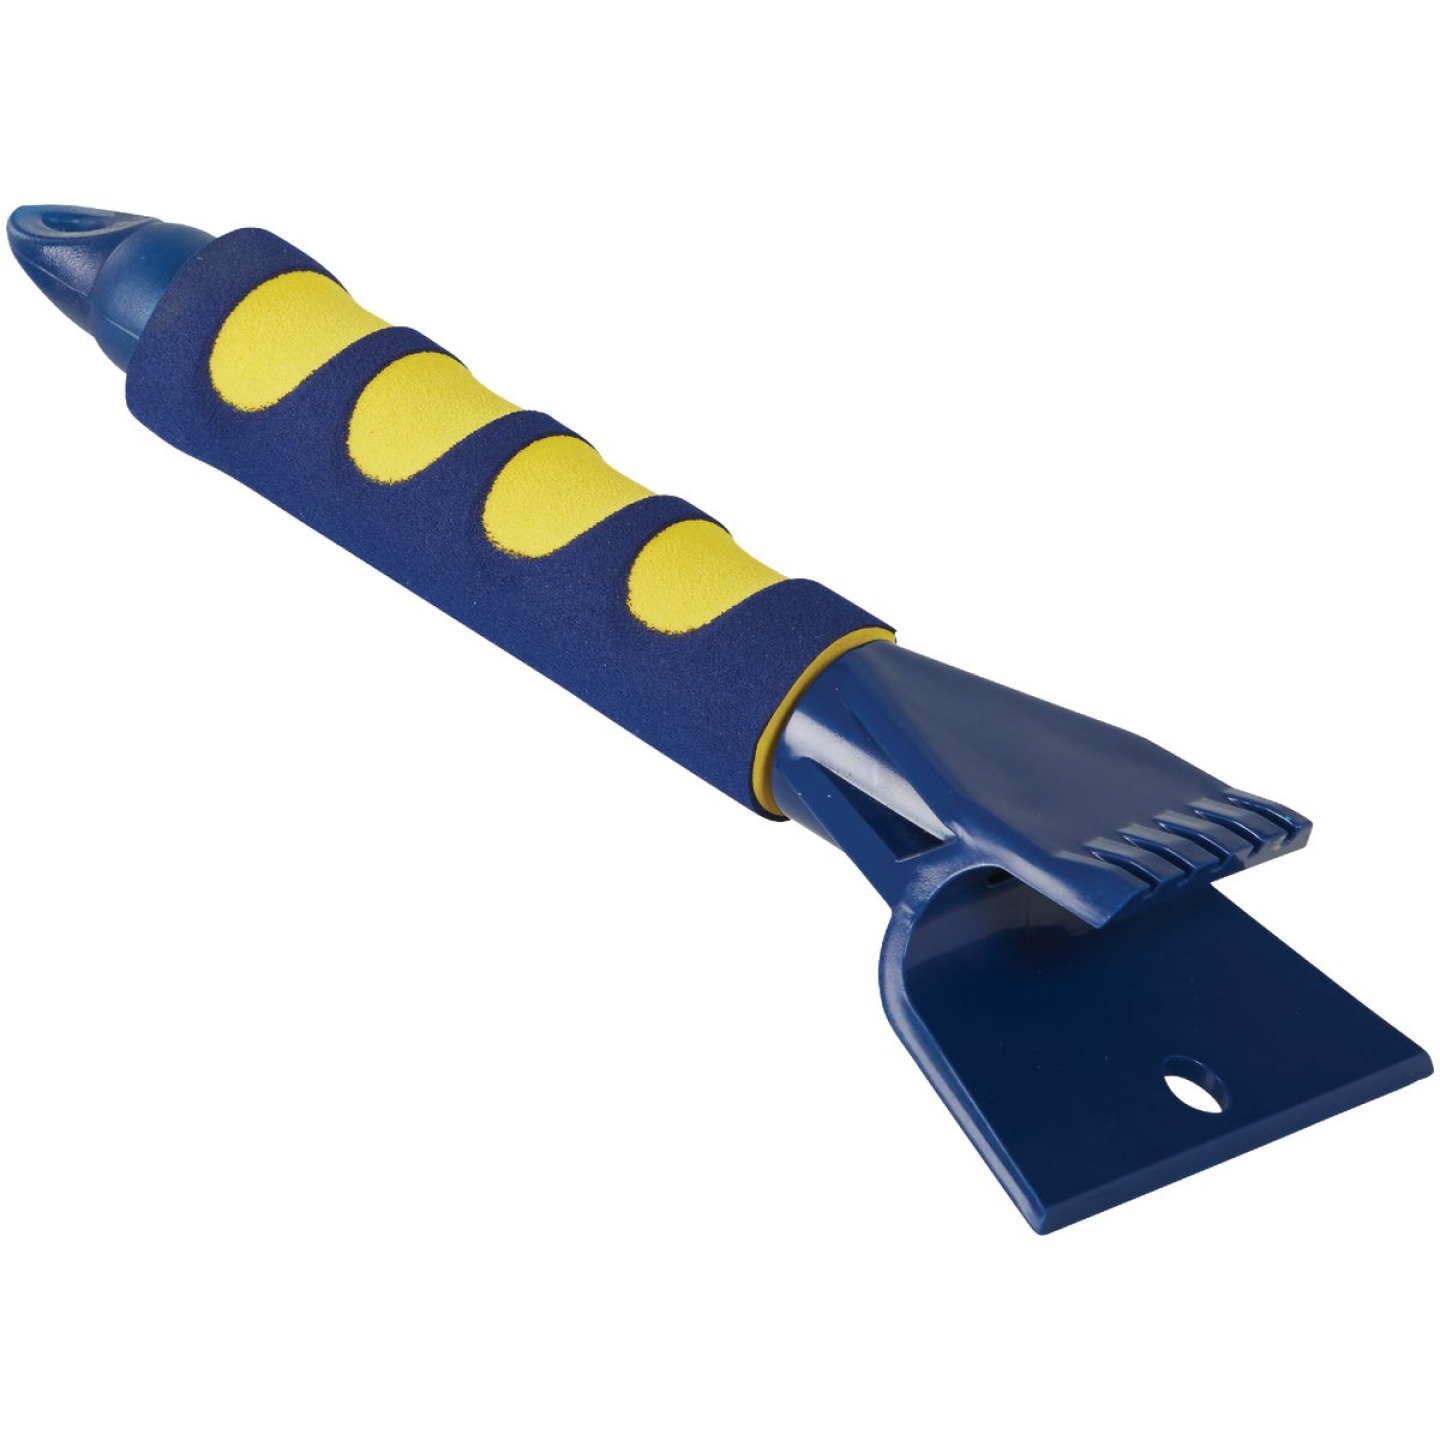 Michelin 11 In. Extreme Ice Scraper with Chipper Image 1